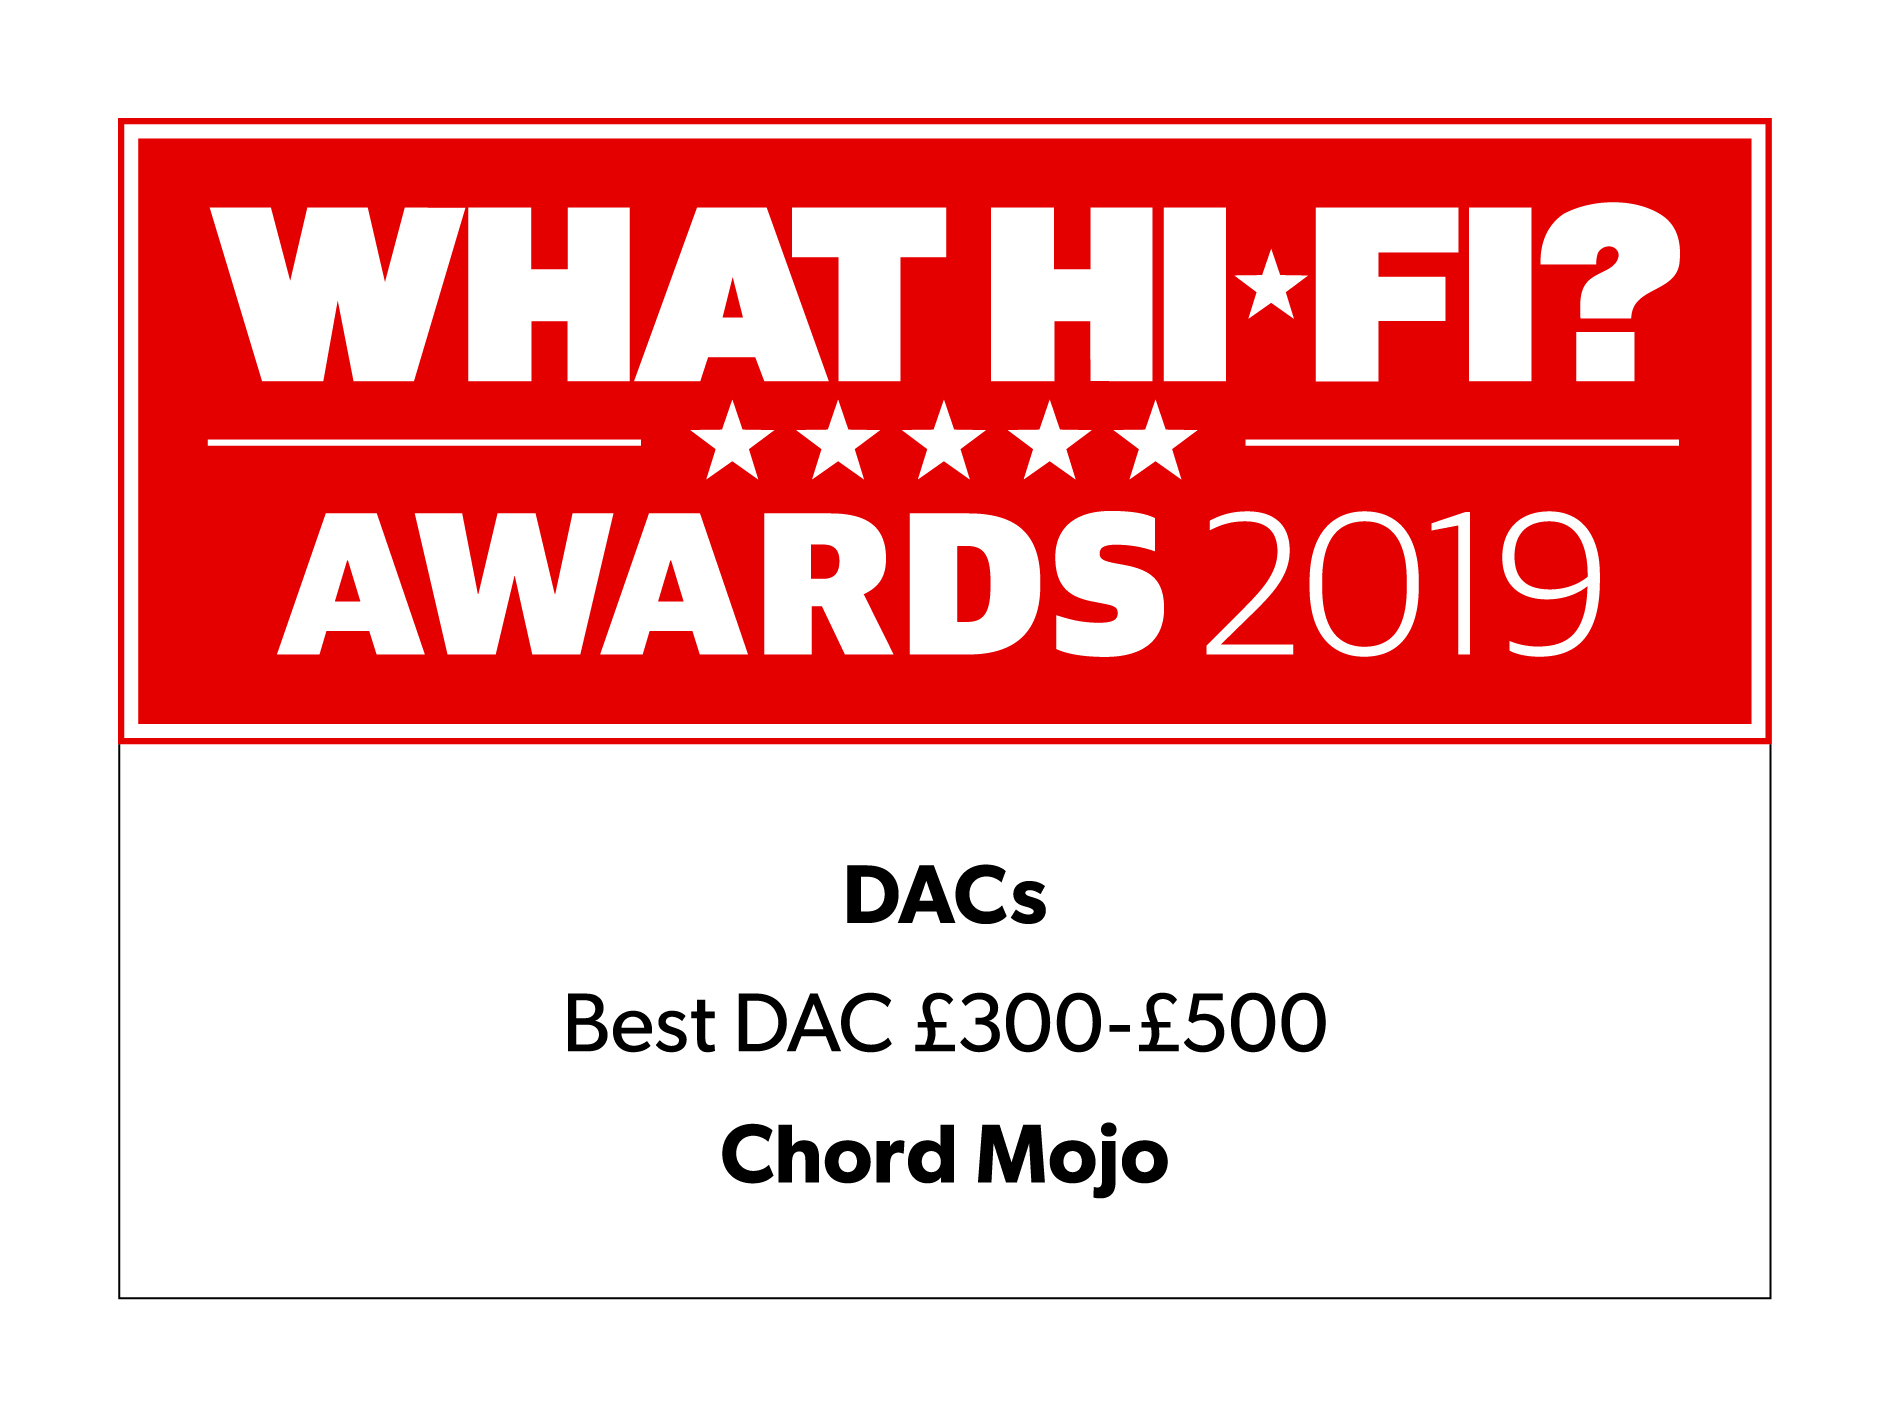 Chord takes 3/6 DAC wins in the WHF? Awards - Chord Electronics has won an incredible three out of five Best DAC 2019 awards from What Hi-Fi? in the 2019 honours, cementing its place as the UK's leading DAC manufacturer for another successive year.